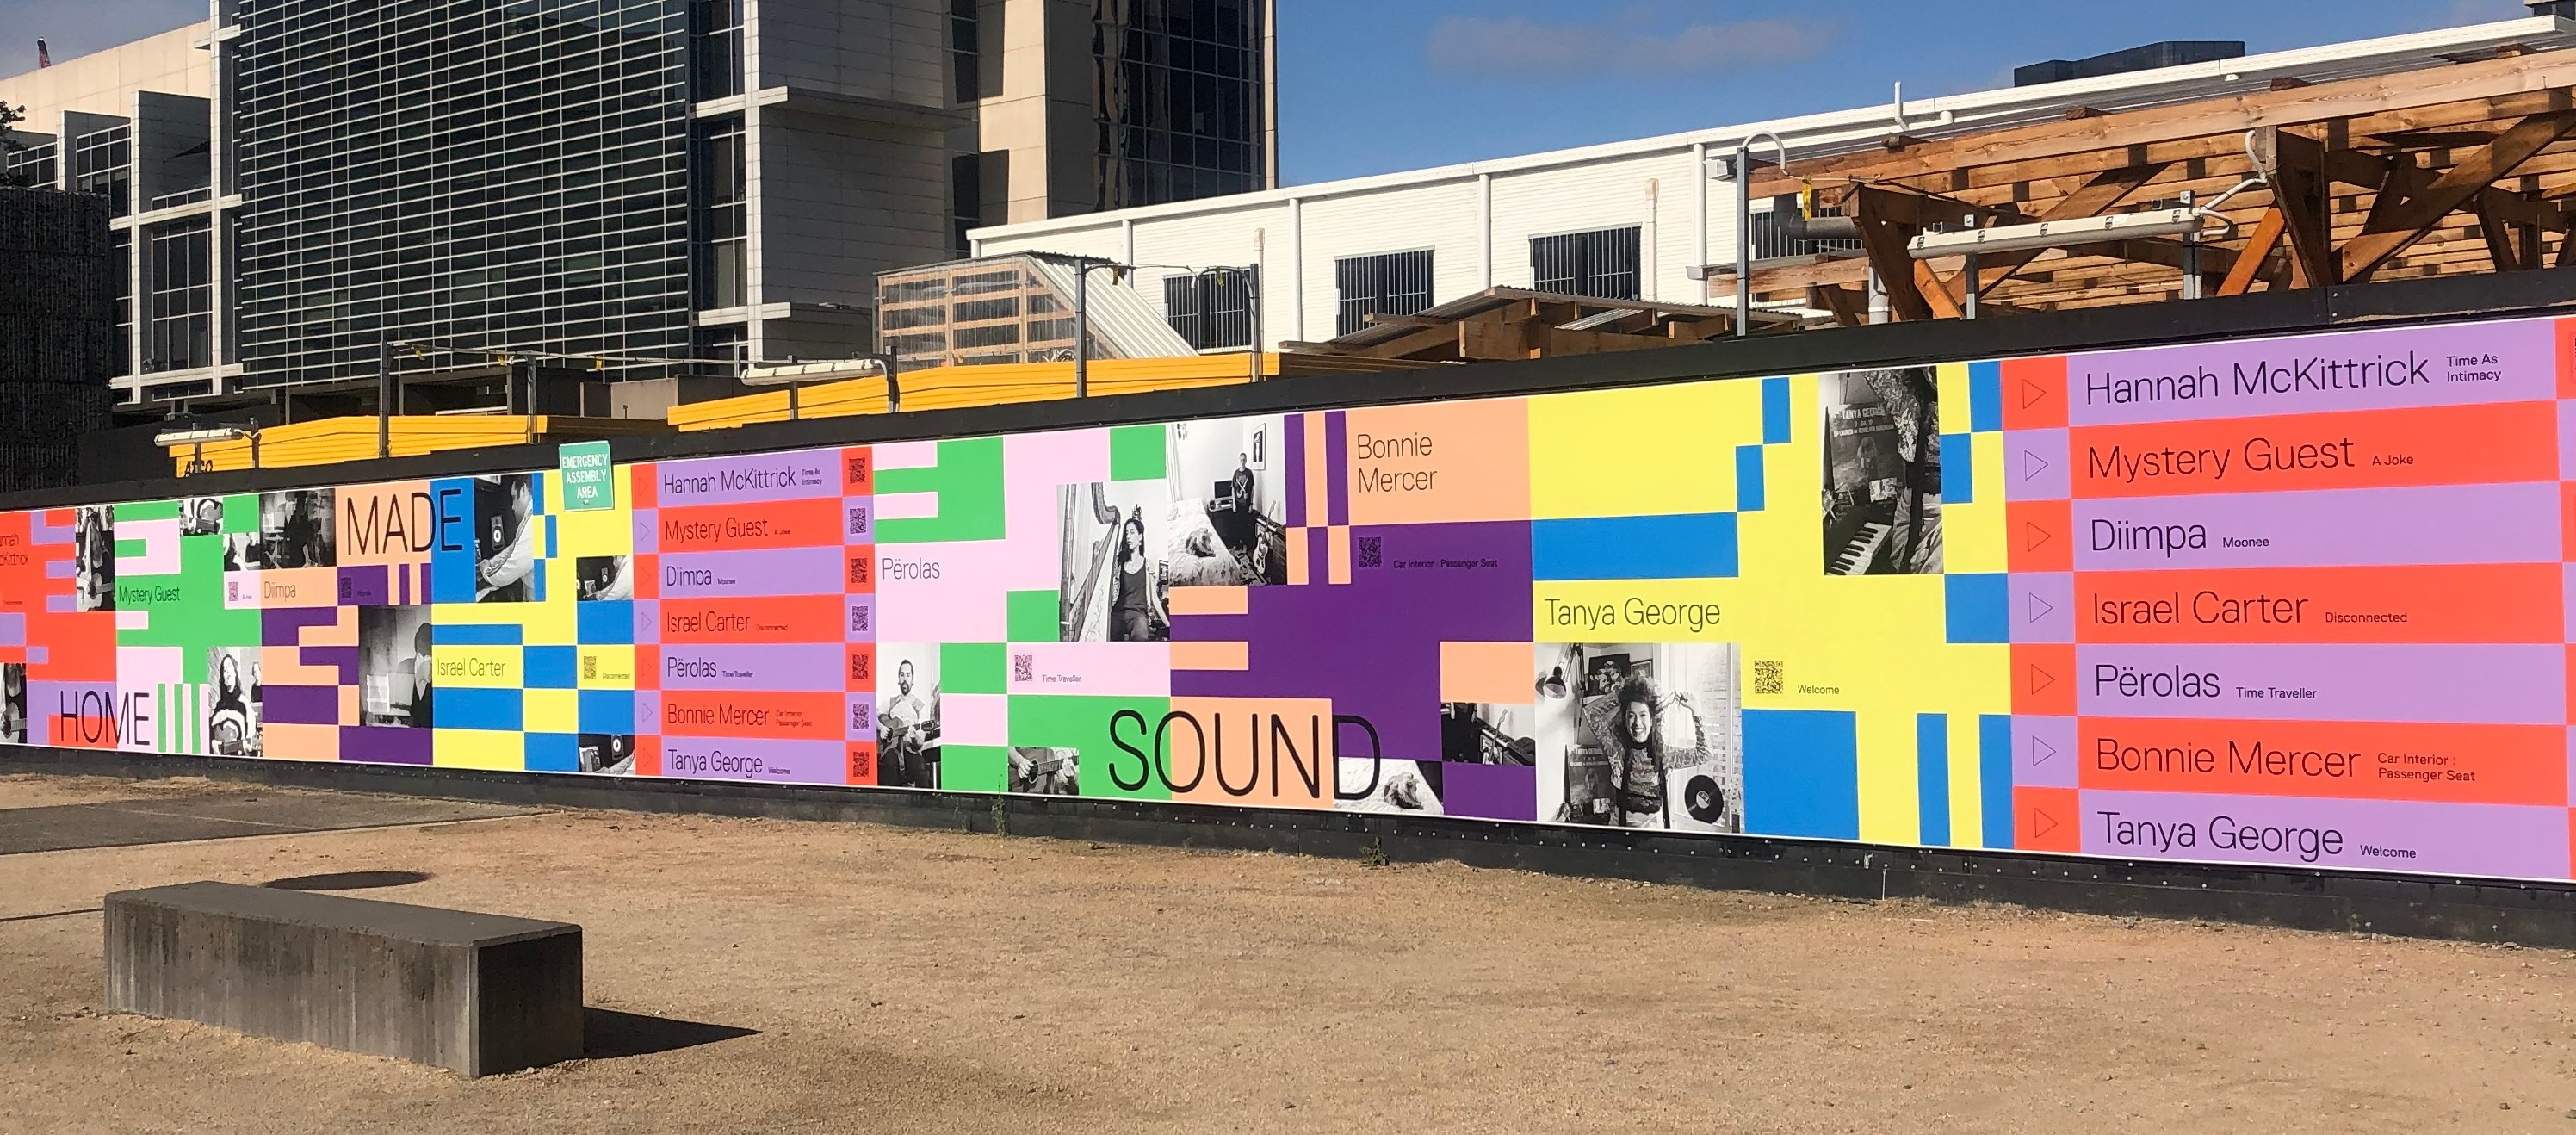 A mural featuring images of musicians and blocks of colours covers construction hoarding in a dusty plaza.